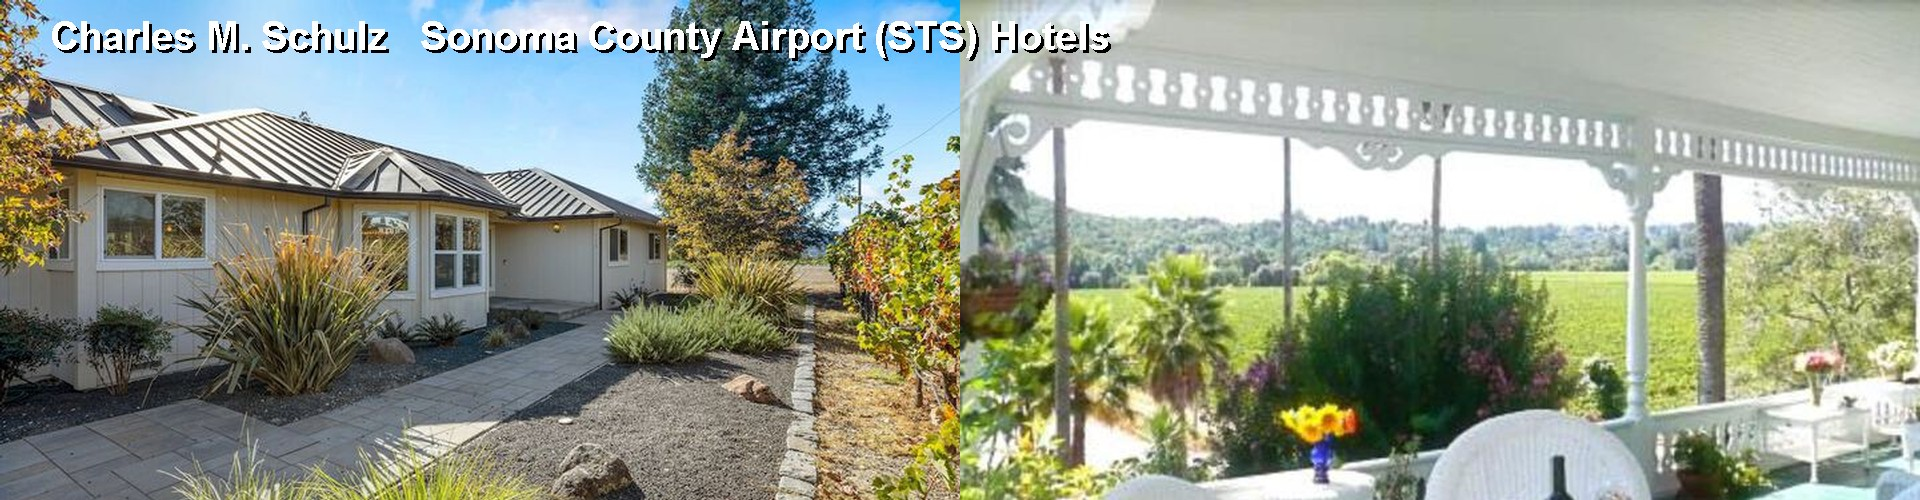 5 Best Hotels near Charles M. Schulz Sonoma County Airport (STS)